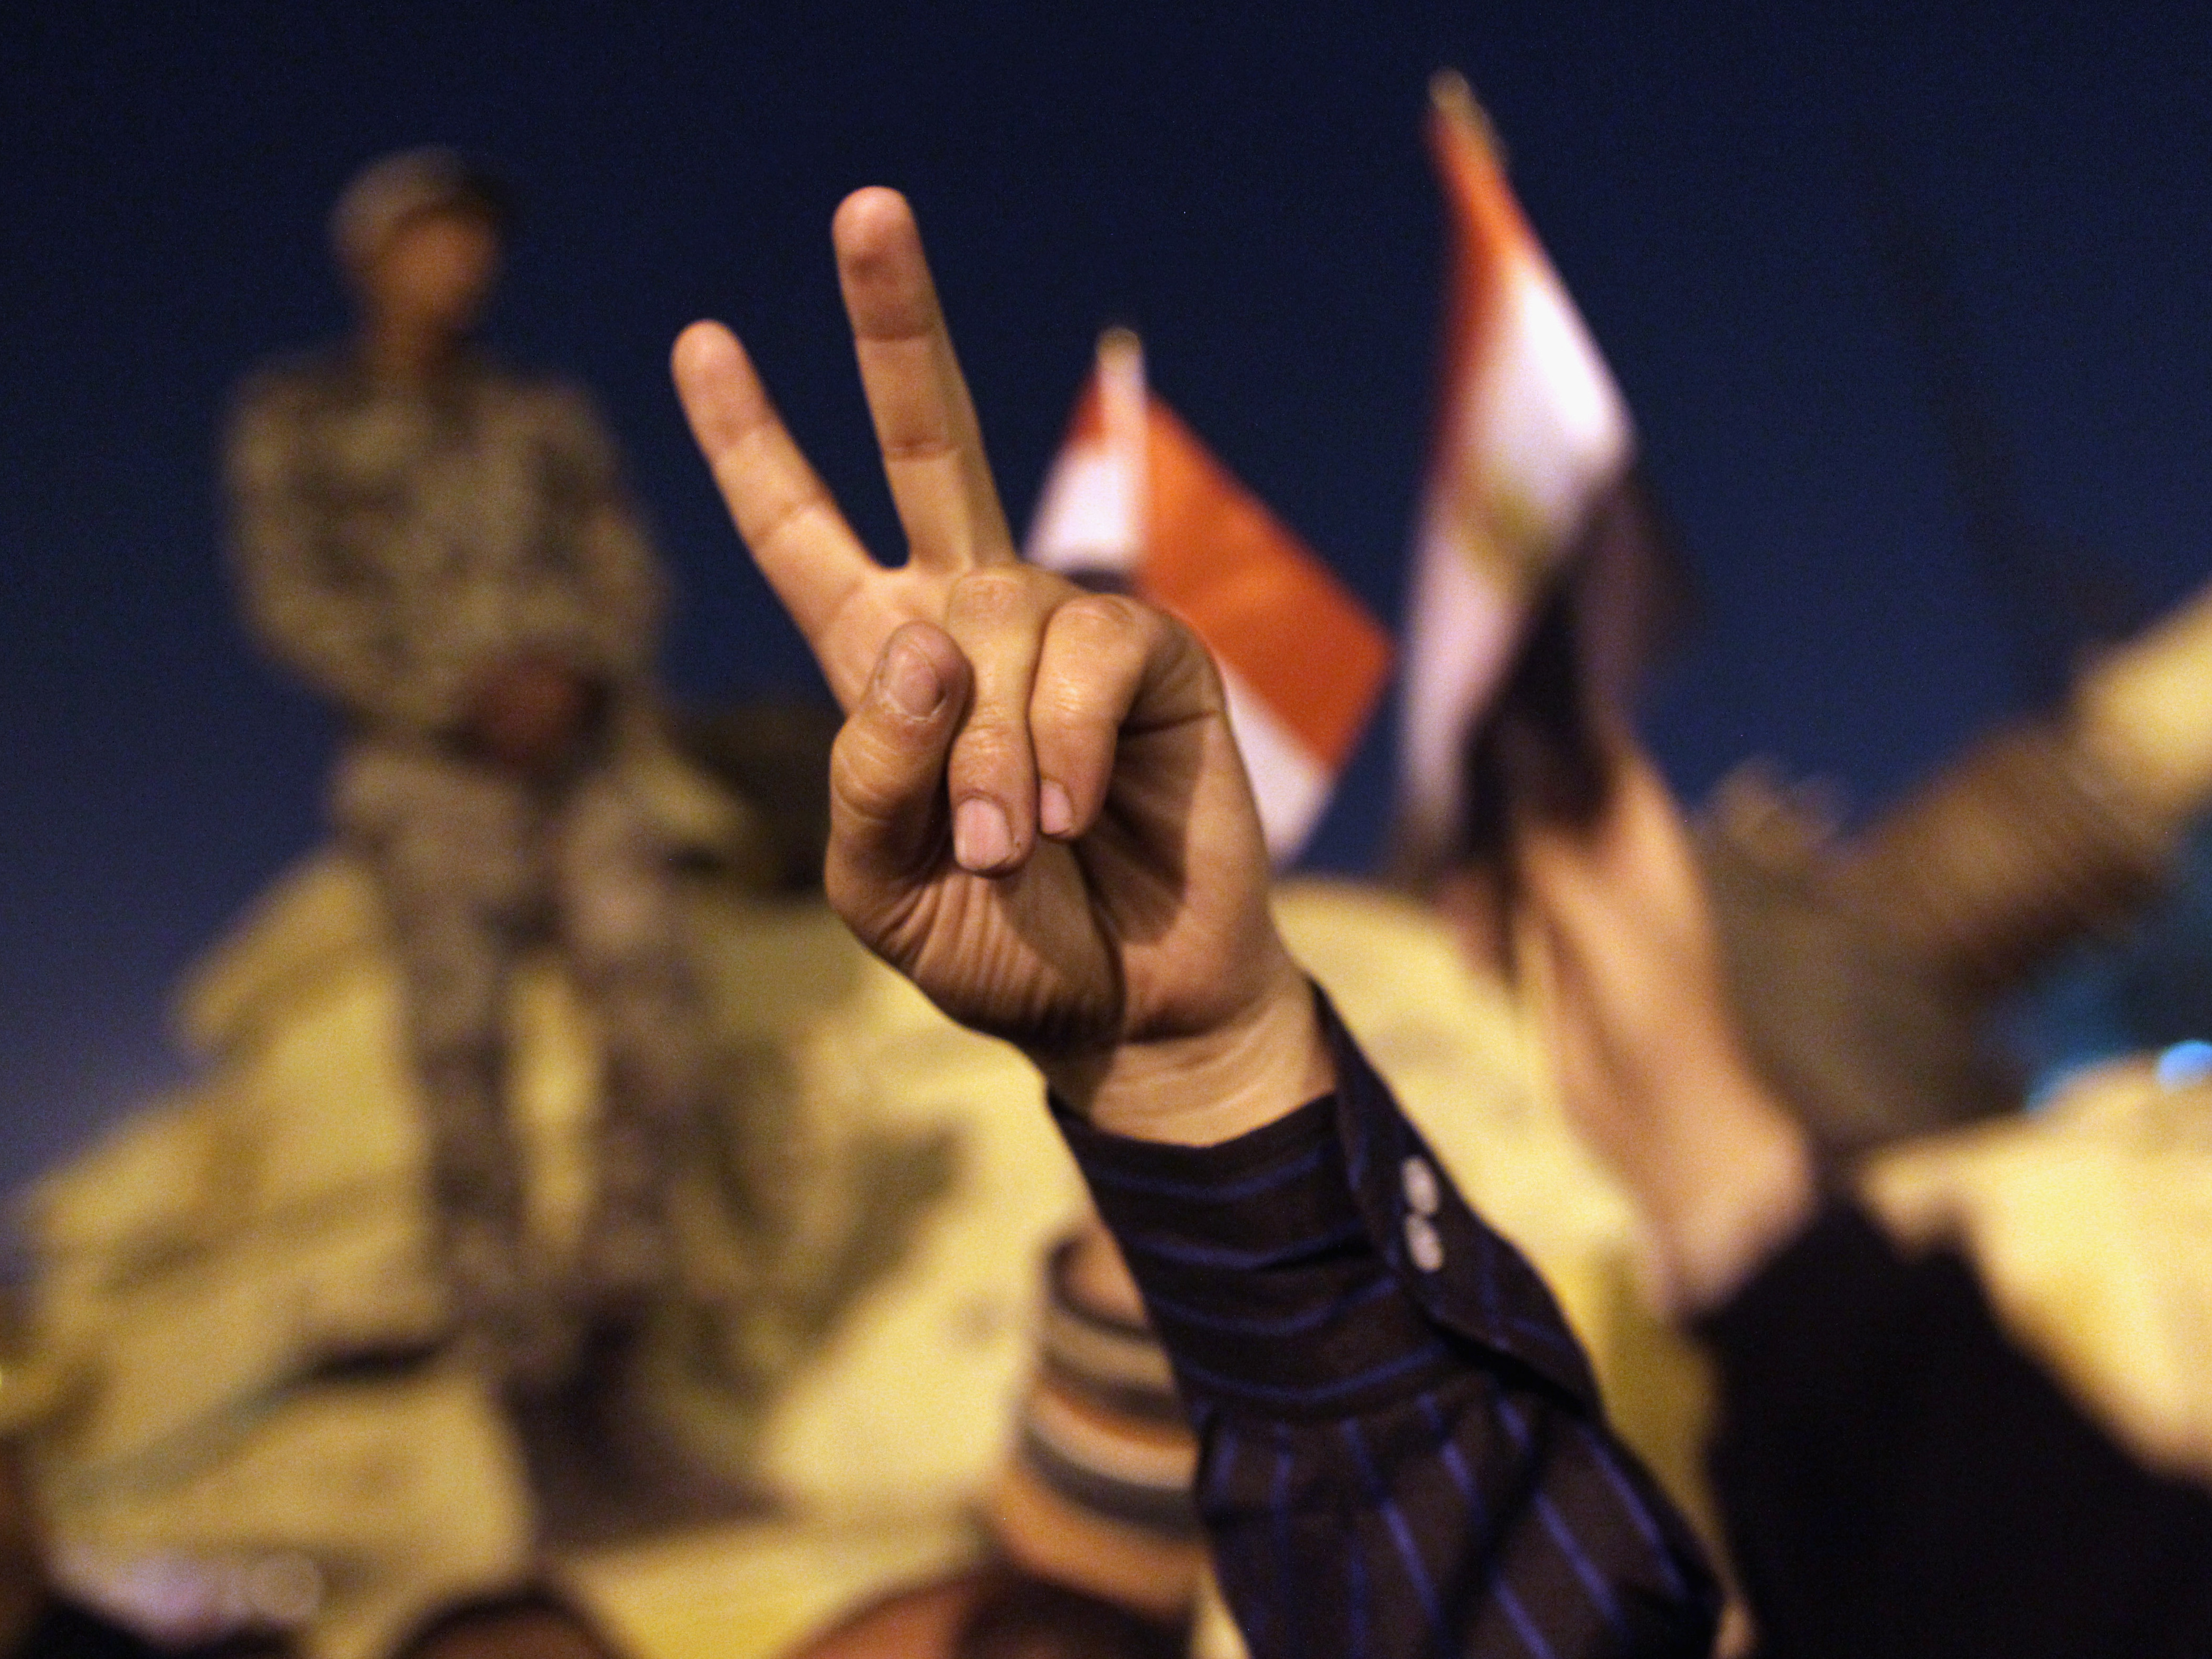 Egypt's Citizens Still Wait 'To Breathe Deep The Air Of Freedom'